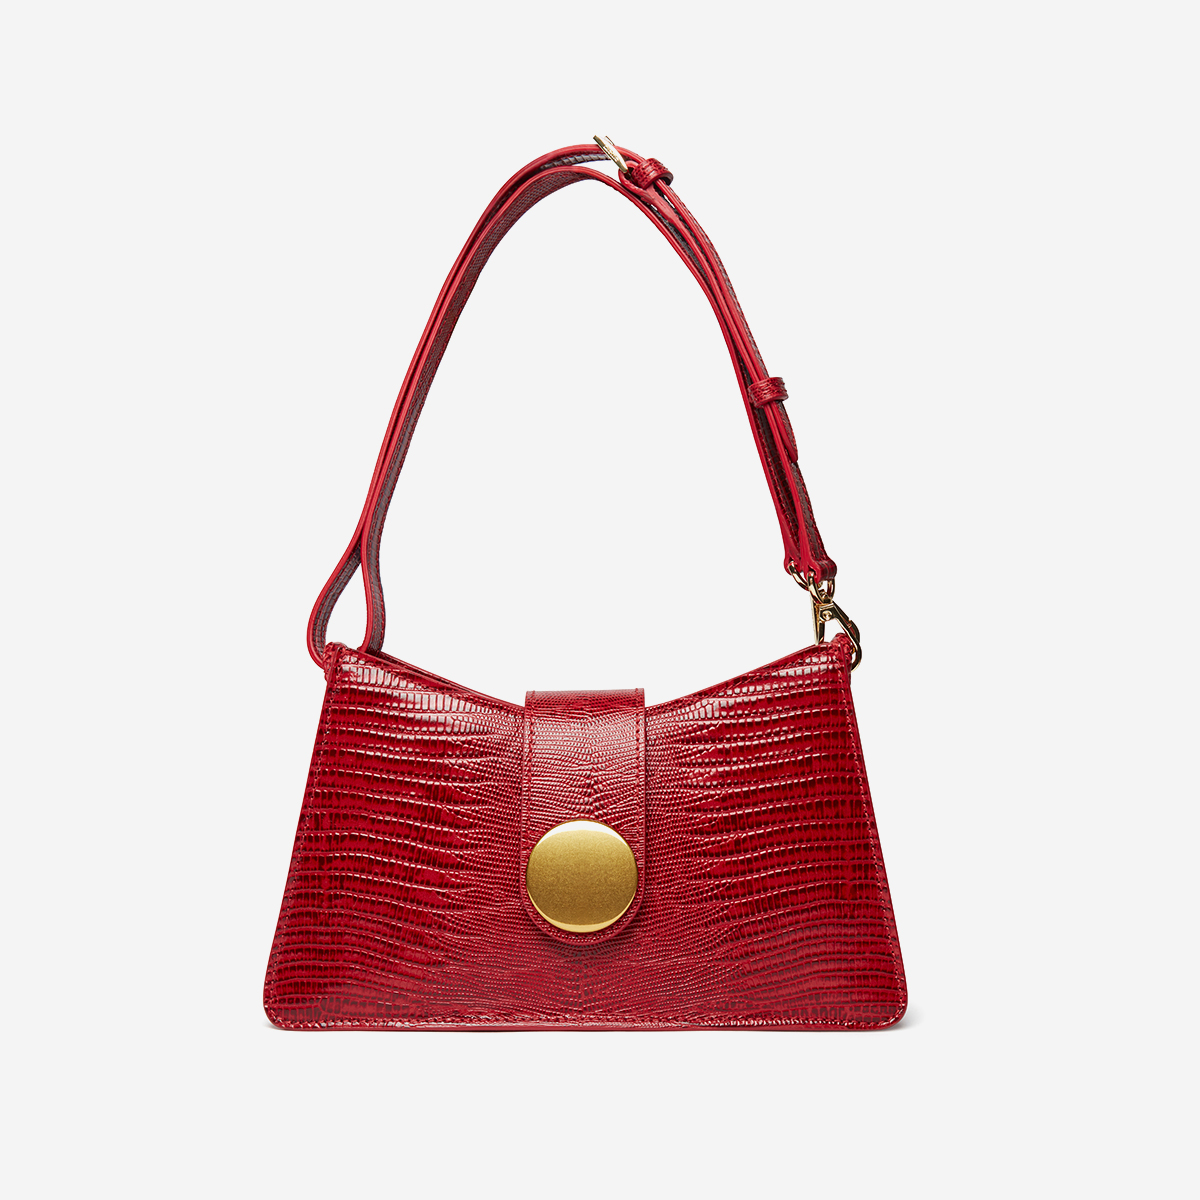 Red leather handbag with gold buckle